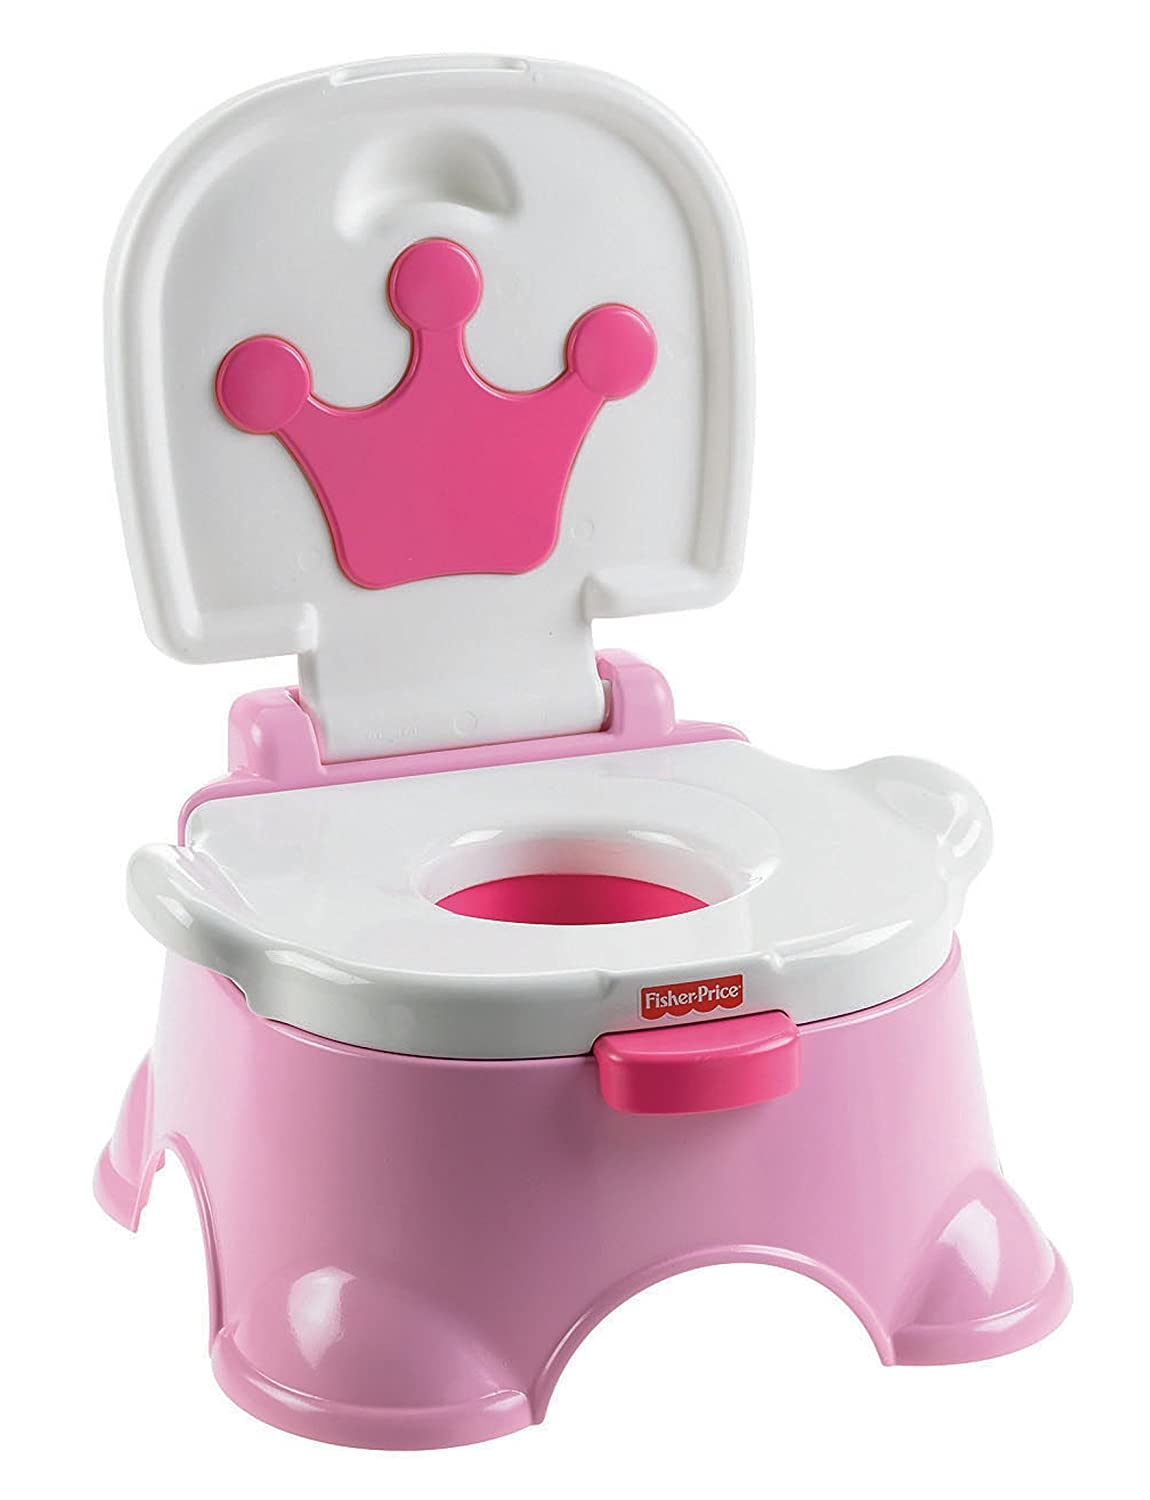 Amazon.com  Fisher-Price Pink Princess Stepstool Potty  Toilet Training Potties  Baby  sc 1 st  Amazon.com & Amazon.com : Fisher-Price Pink Princess Stepstool Potty : Toilet ... islam-shia.org